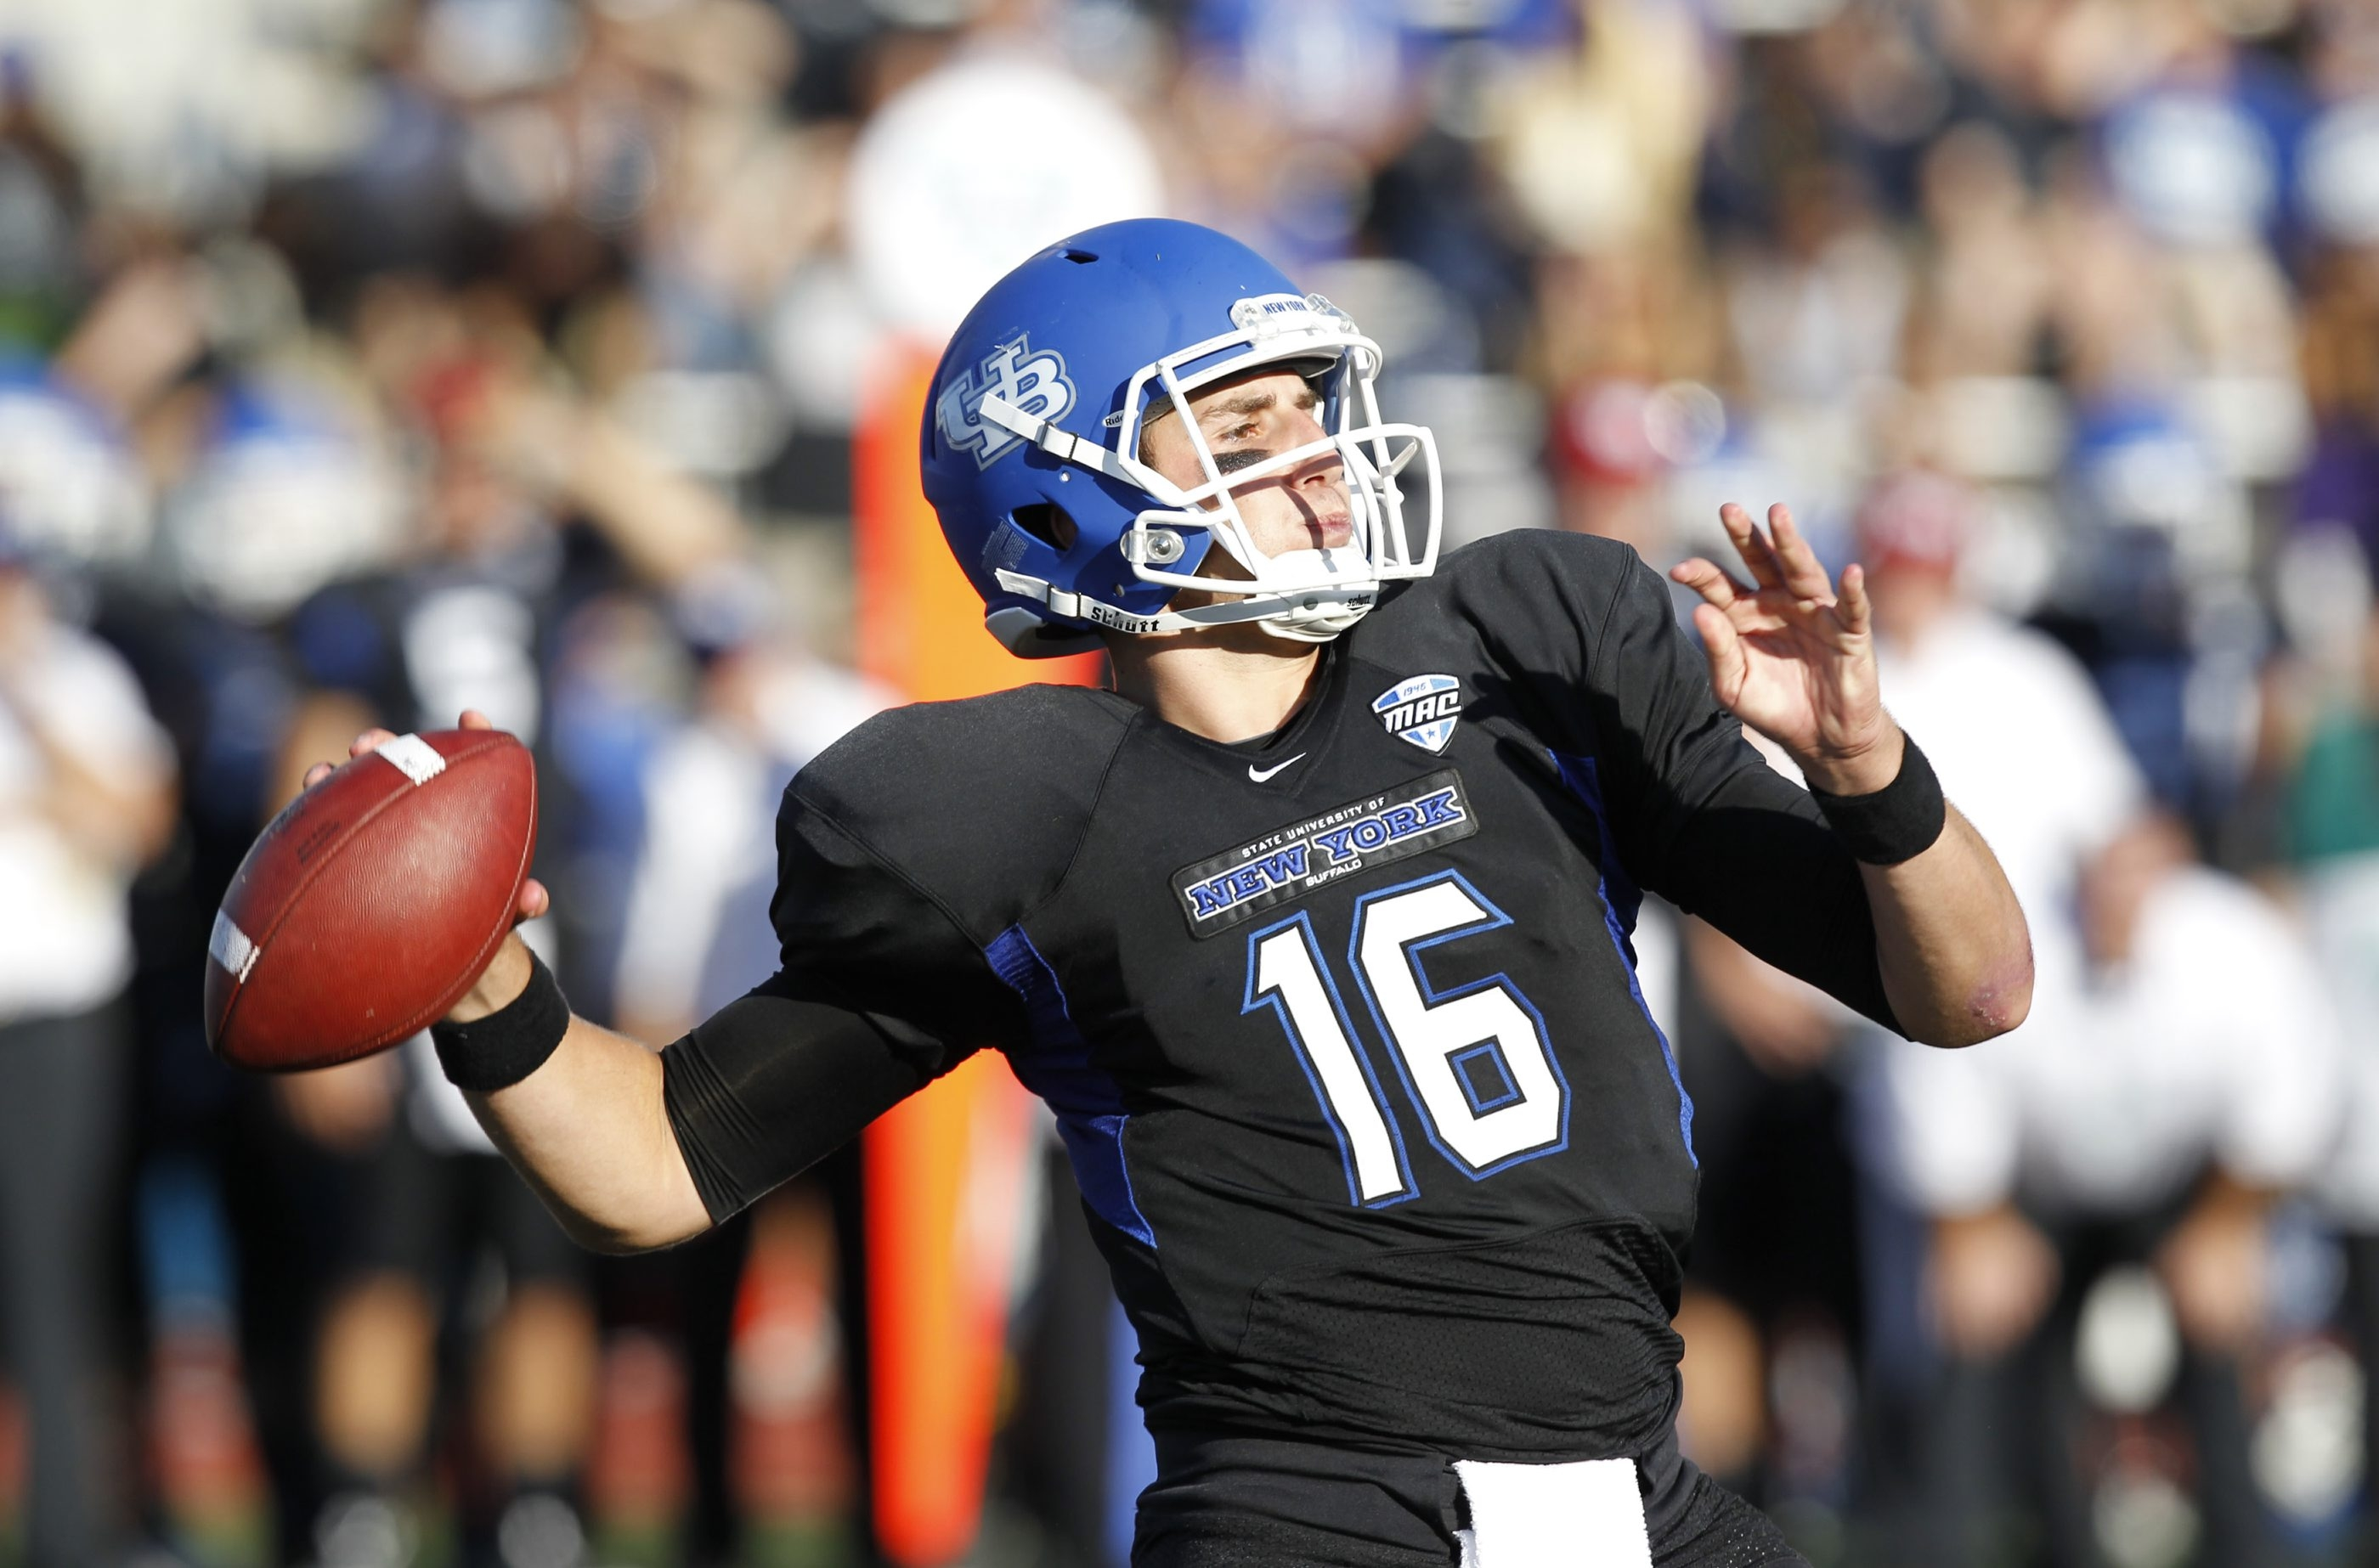 UB is looking to for offensive weapons to go with quarterback Joe Licata (16).